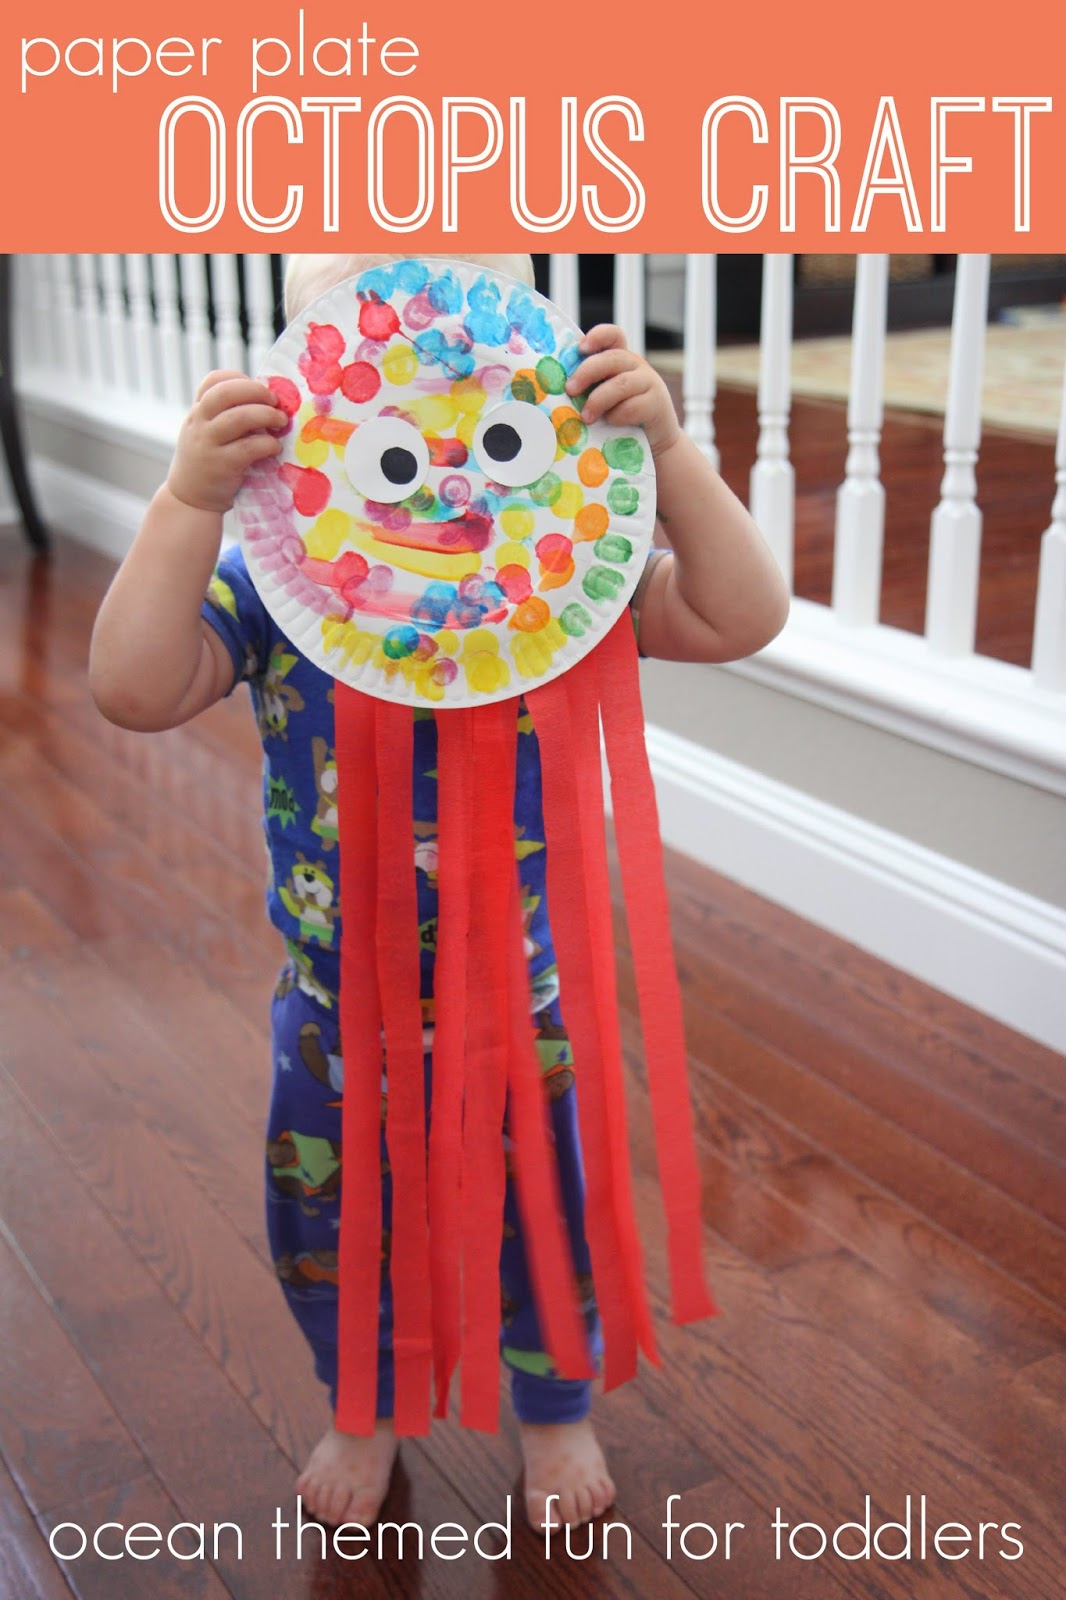 Toddler Approved Paper Plate Octopus Craft